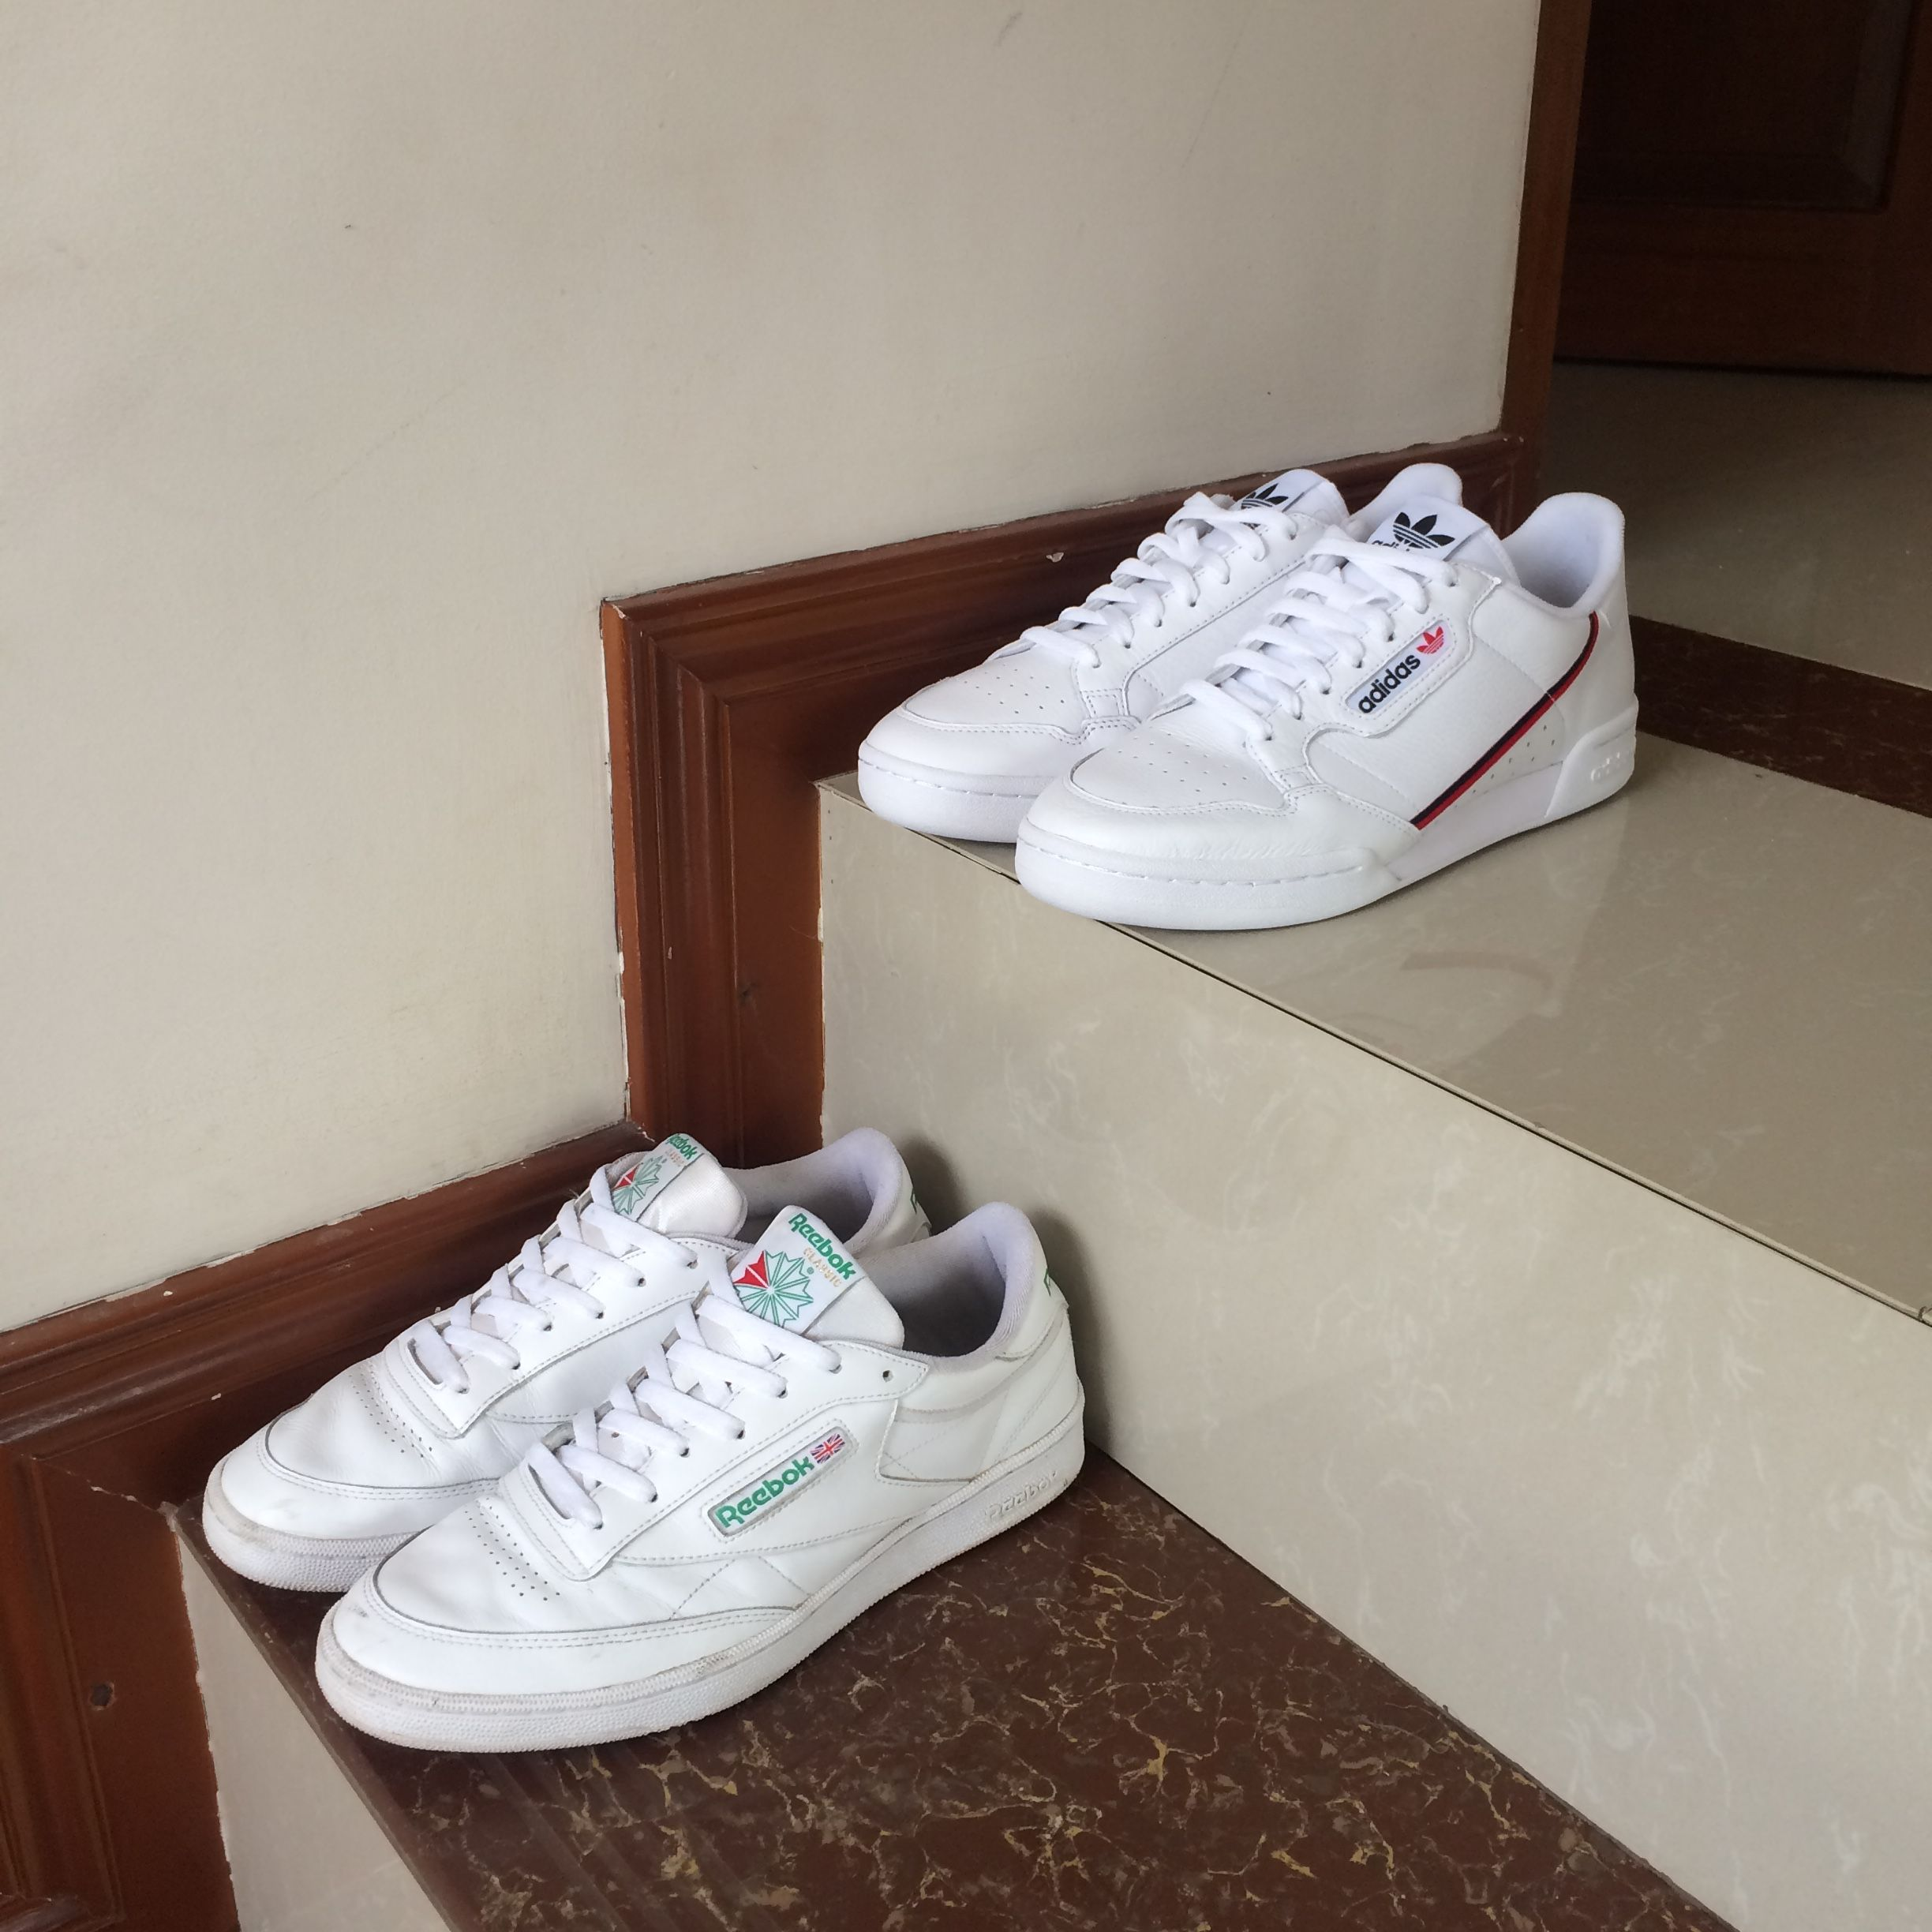 Adidas Continental 80 and Reebok Club C | Sneakers in 2019 ...